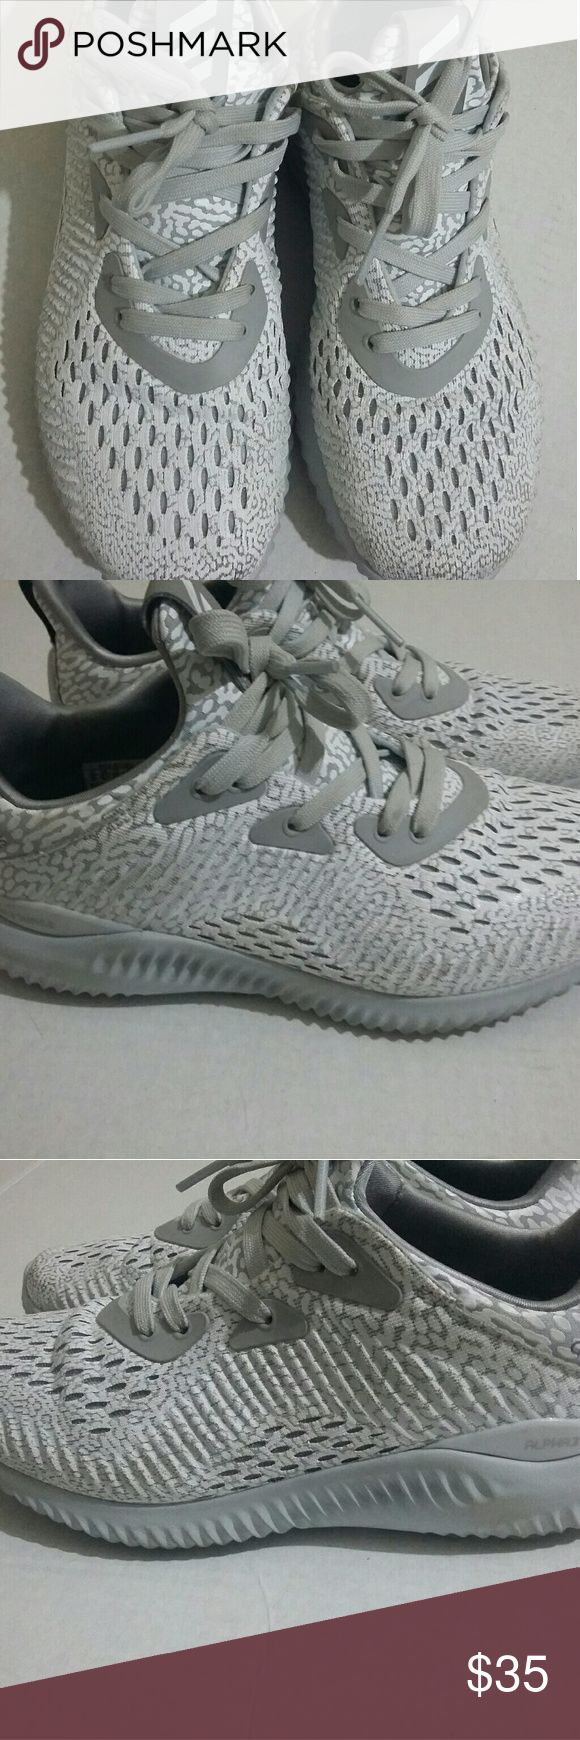 Adidas Alpha Bounce Aramis Running Shoes Size 5 Boys Youth Fabric/Mesh upper Gray and white Minor scuffs on heels and front No tears or stains Made in China Good condition Adidas Shoes Sneakers